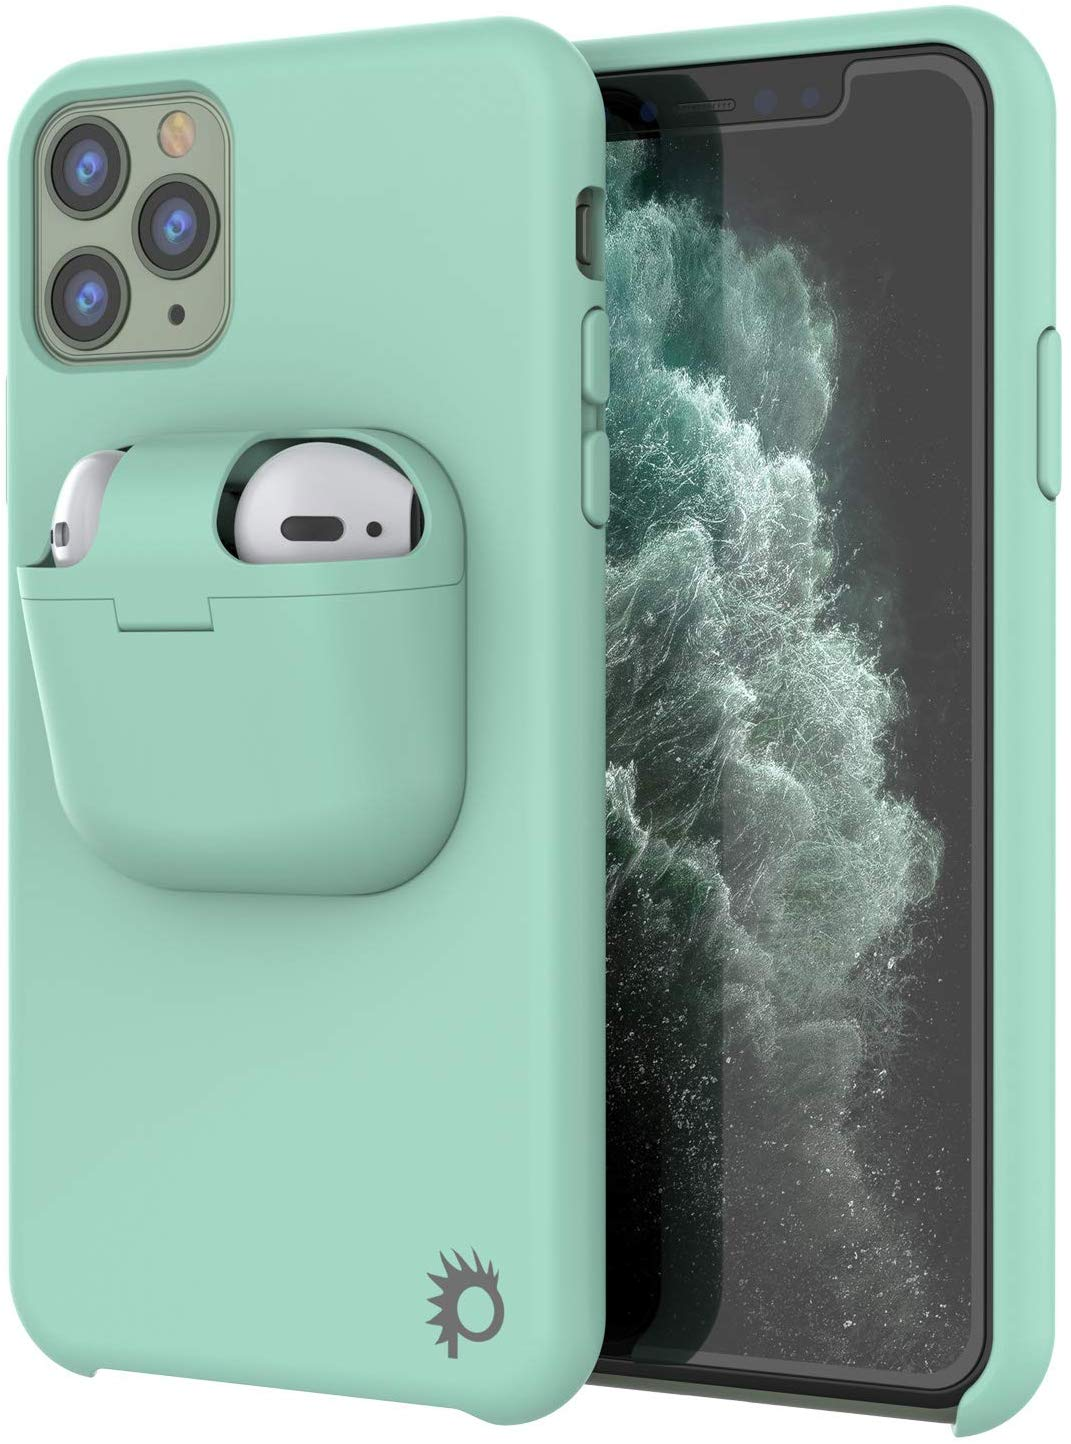 "Punkcase iPhone 11 Pro Airpods Case Holder (CenterPods Series) | Slim & Durable 2 in 1 Cover Designed for iPhone 11 Pro (6.1"") 